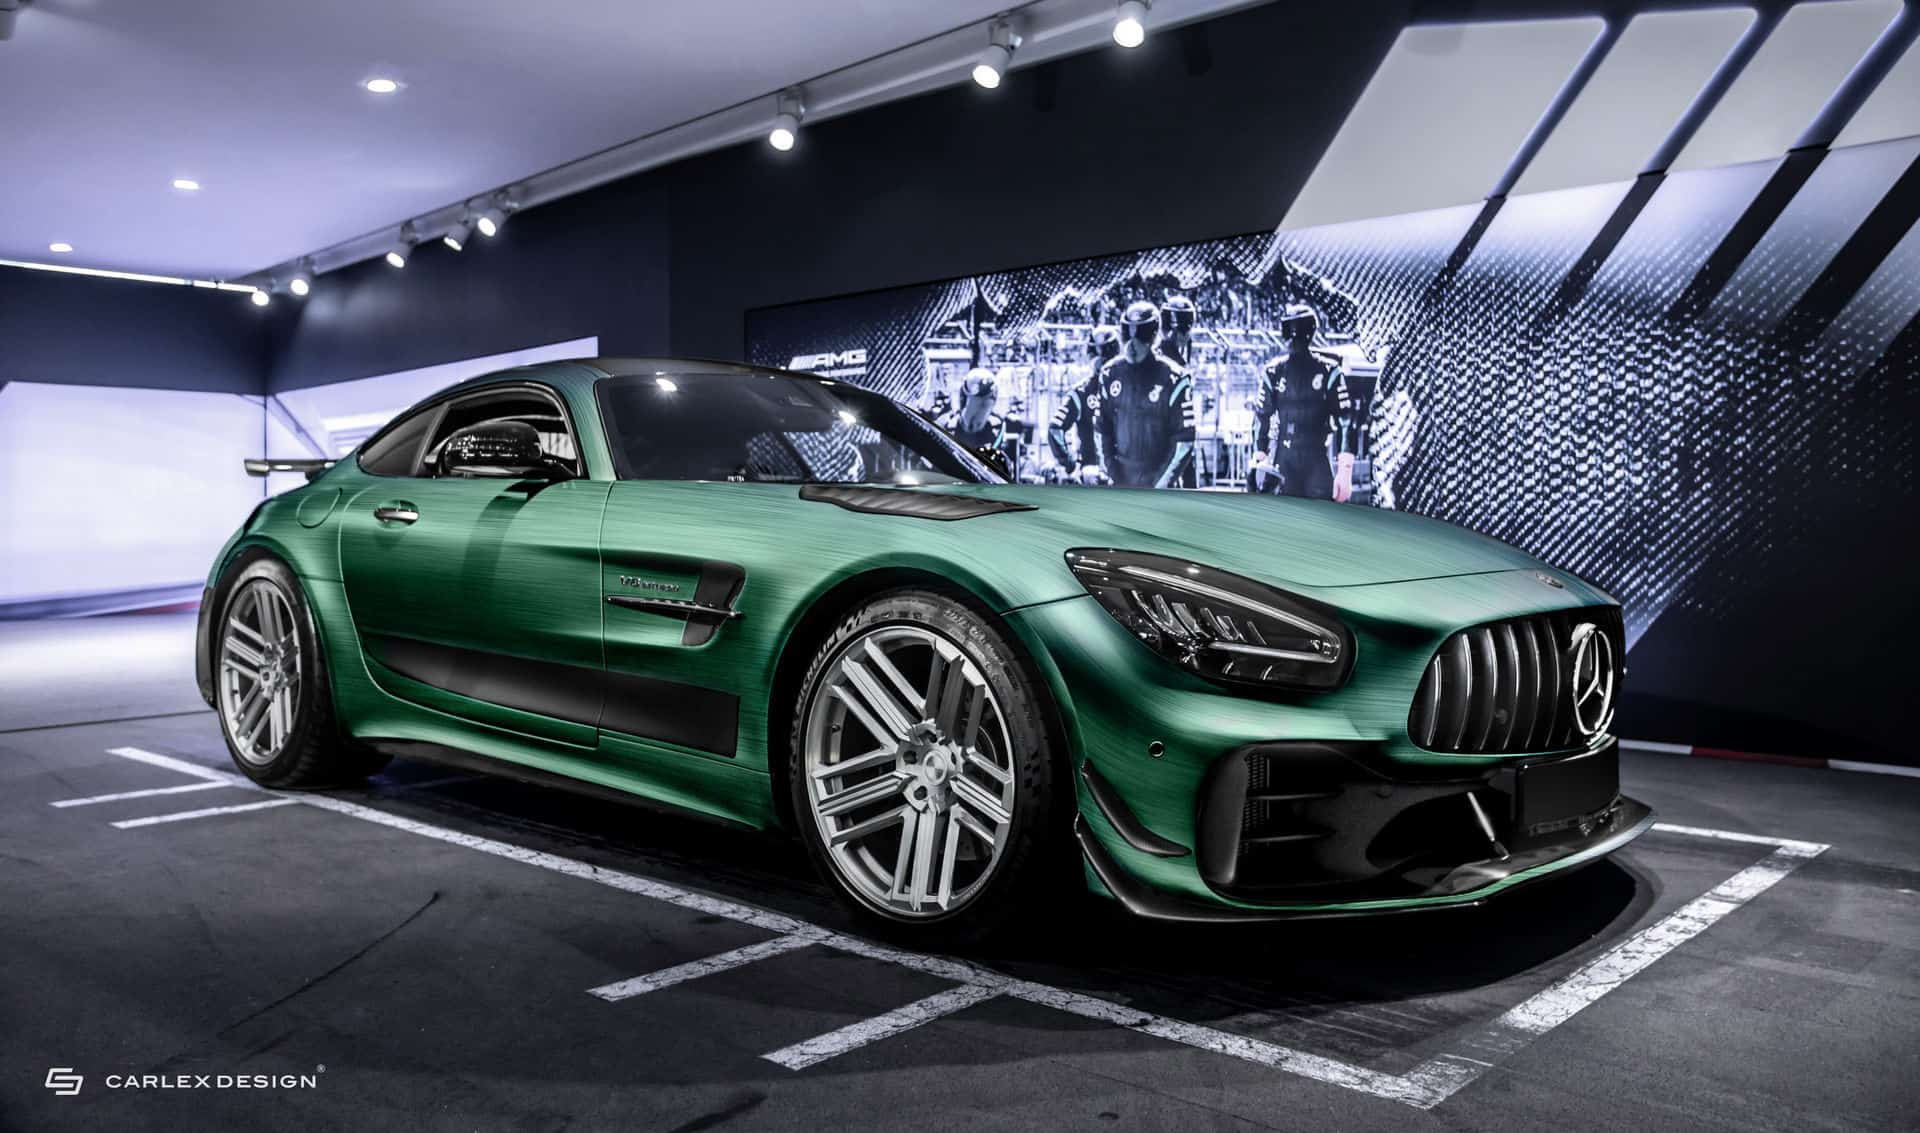 Mercedes AMG GT R PRO Tattoo Edition by Carlex Design